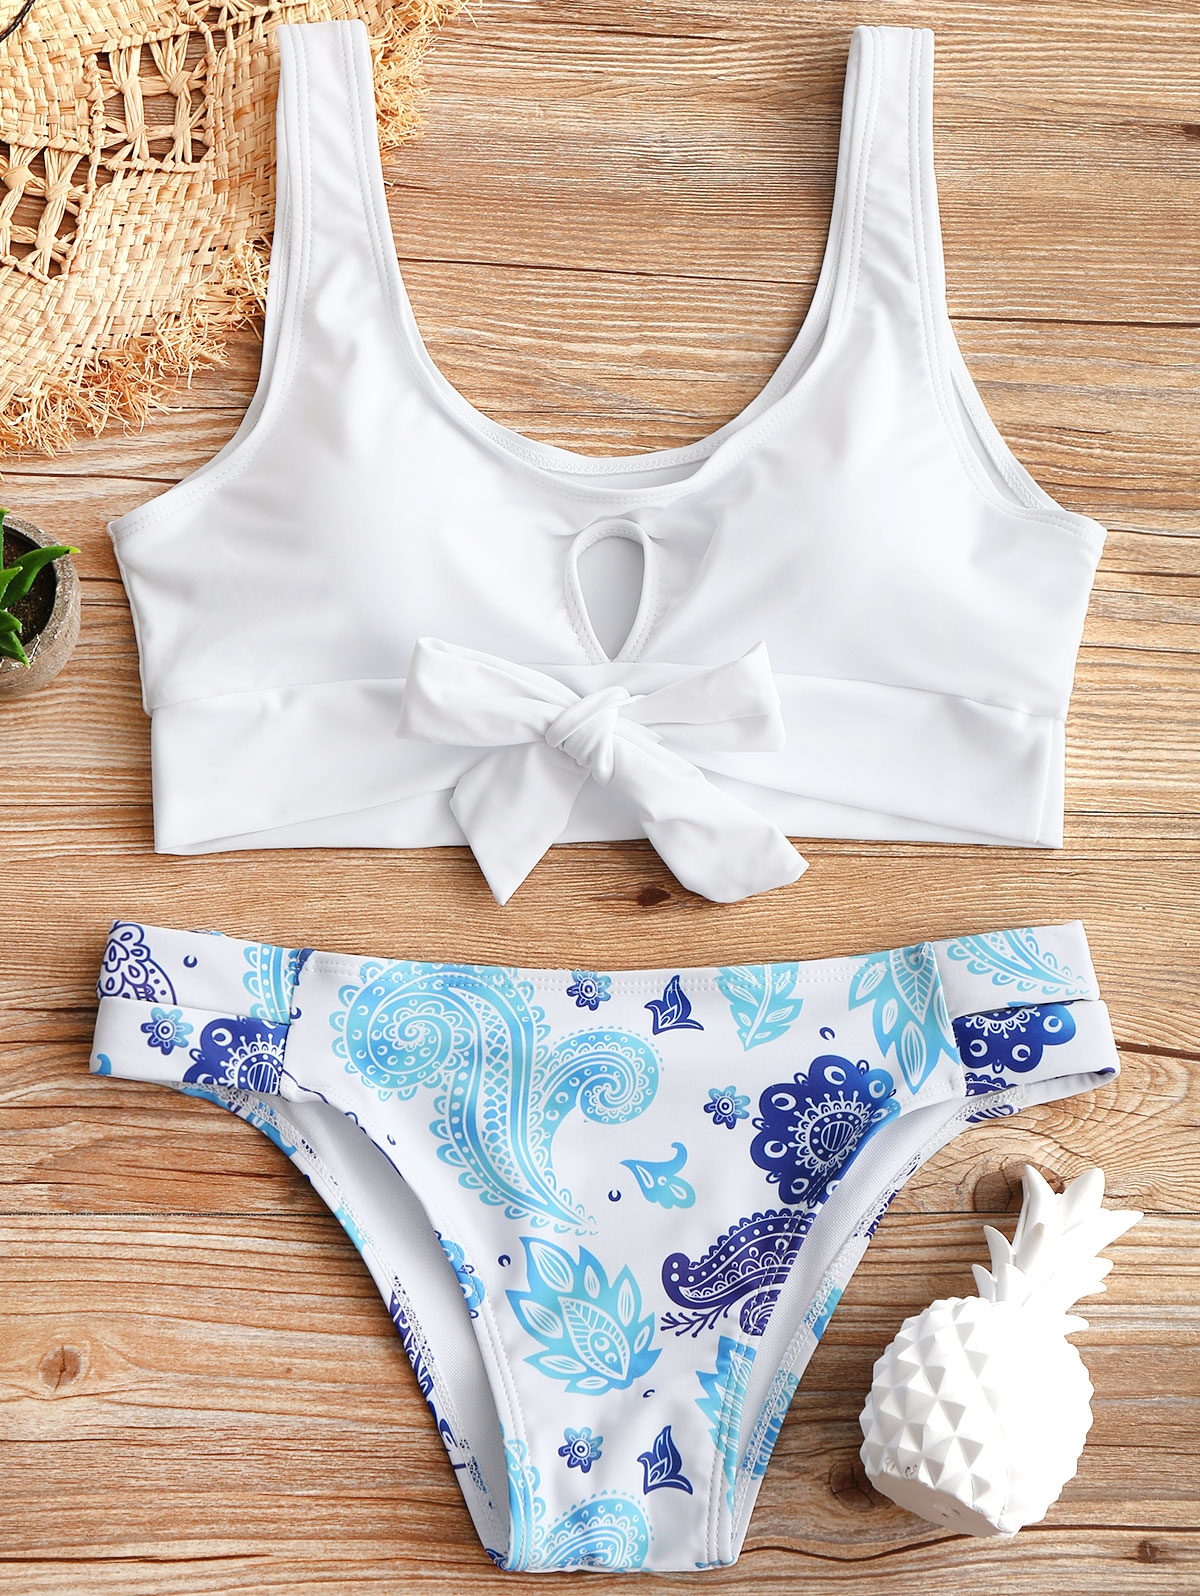 Cutout Top and Printed Bottoms